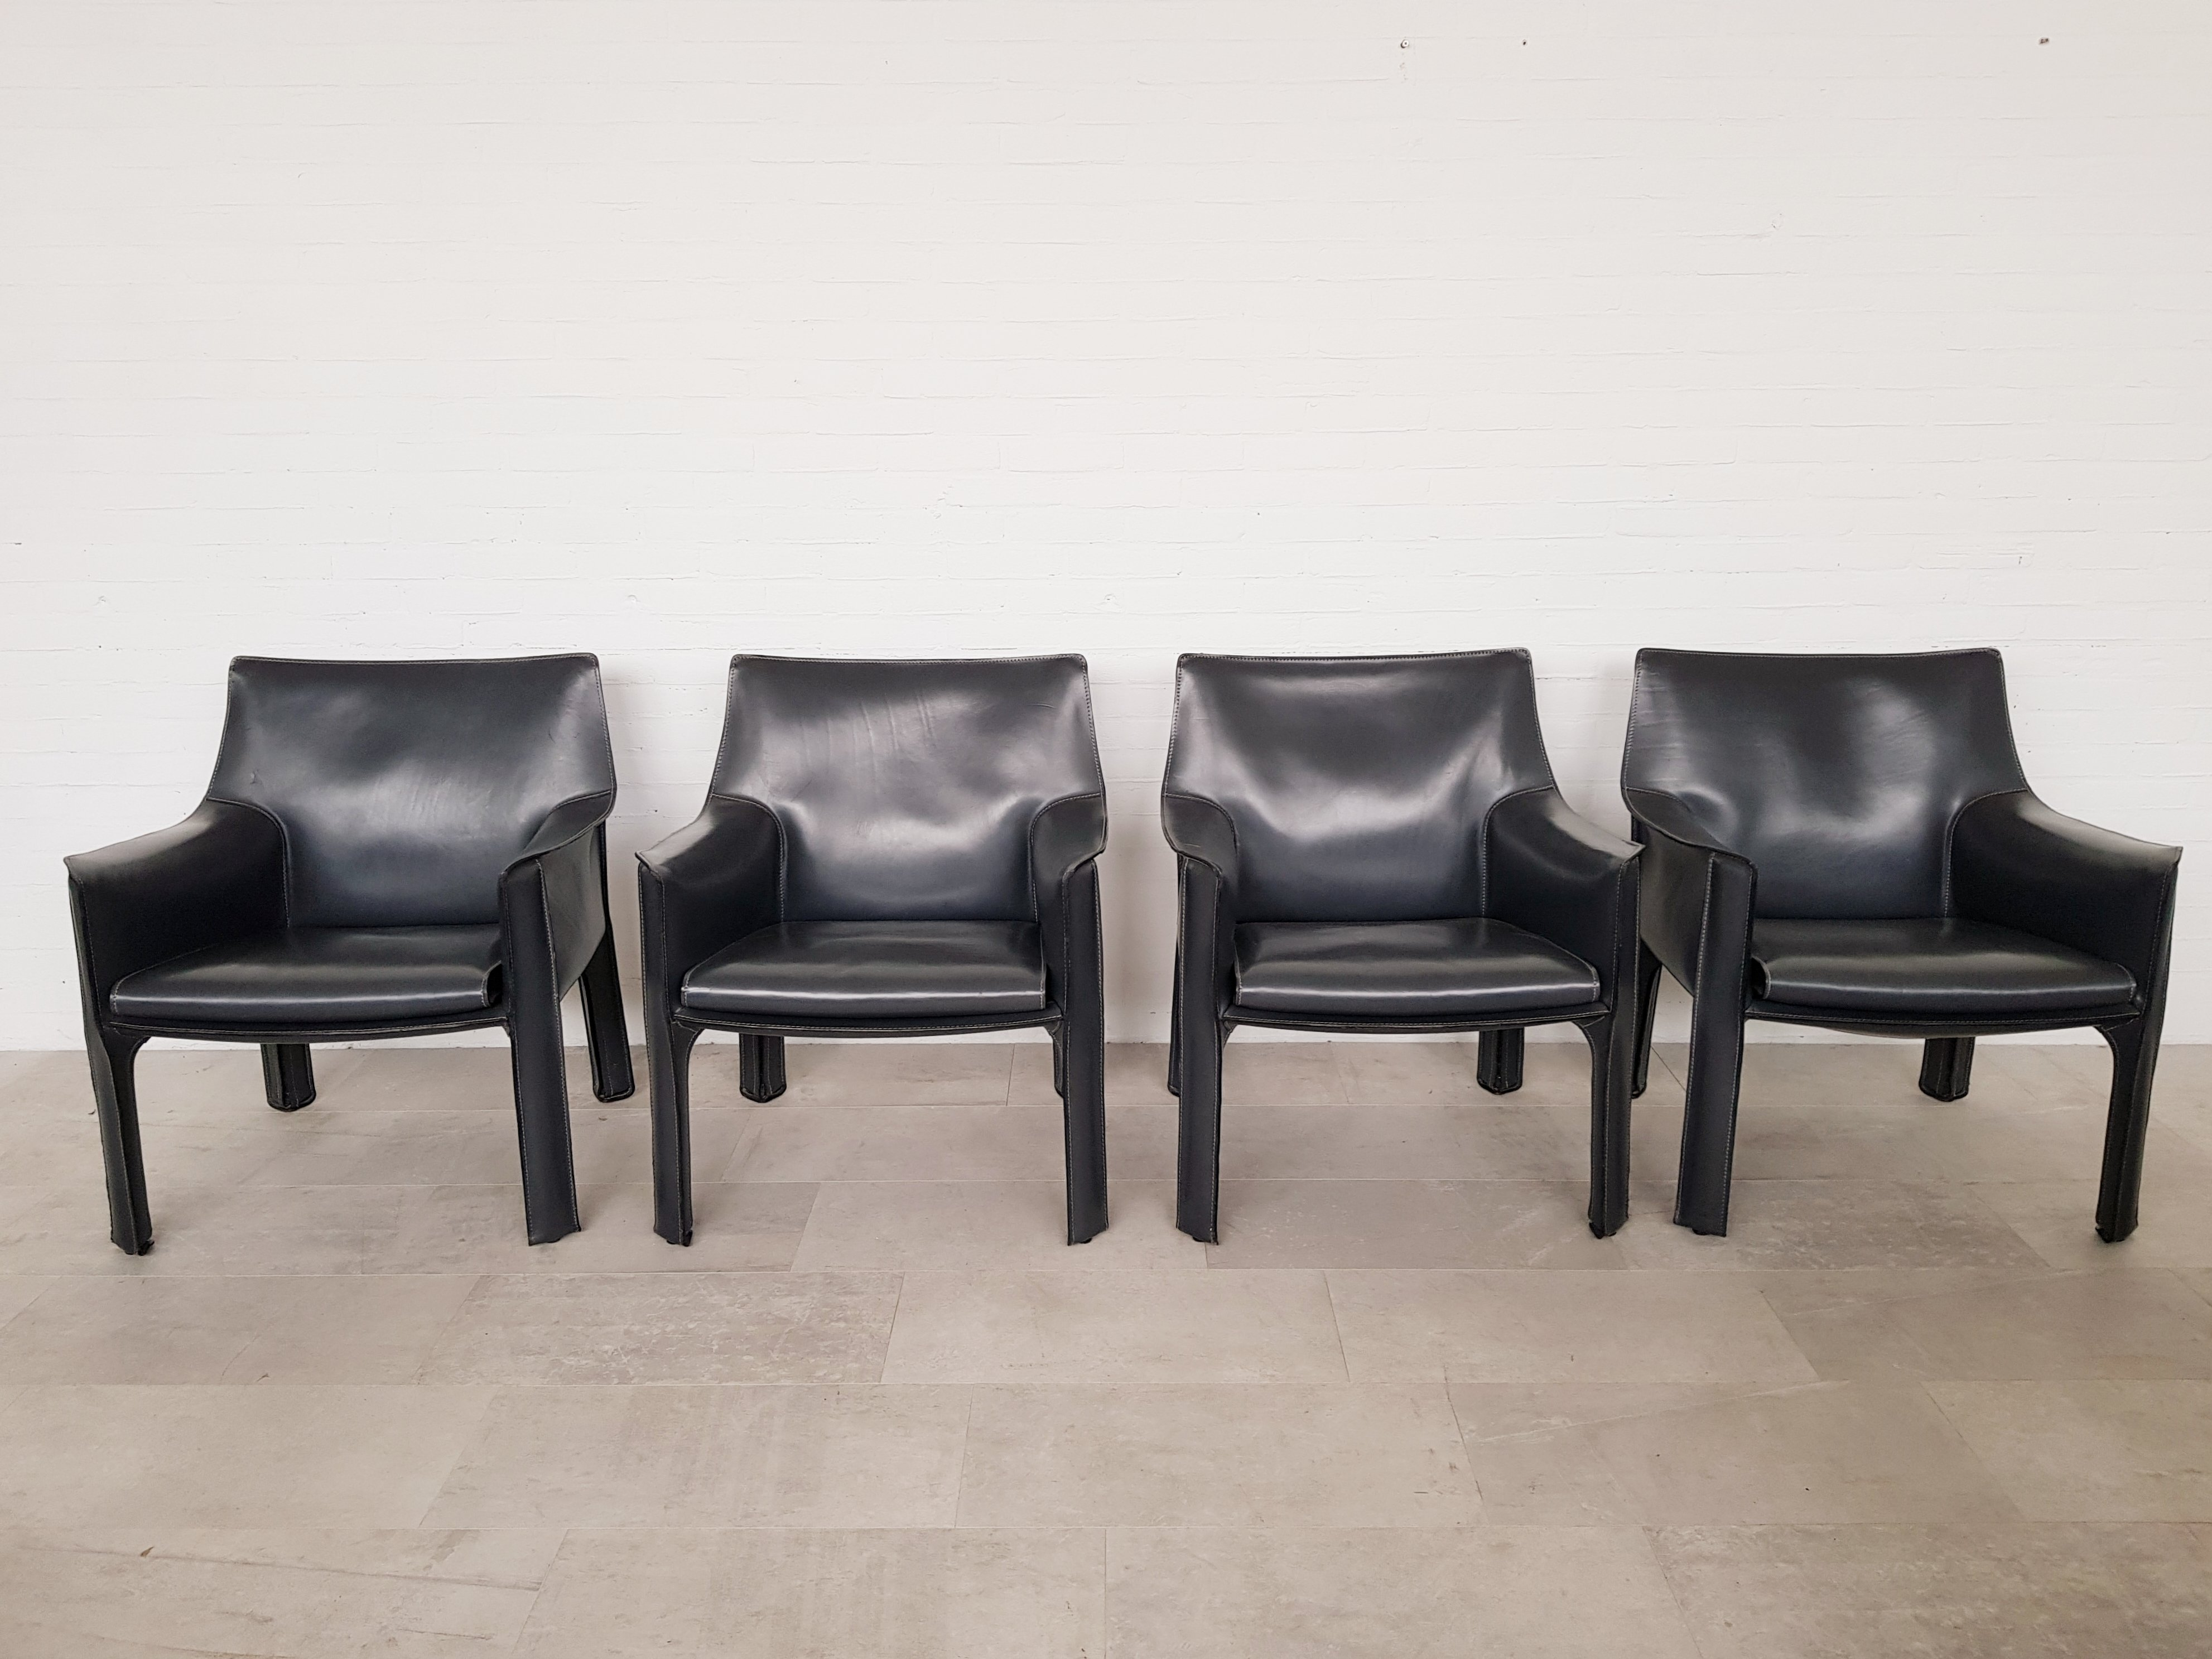 Pleasant Mario Bellini Cab 414 Chairs For Cassina In Dark Grey Ocoug Best Dining Table And Chair Ideas Images Ocougorg